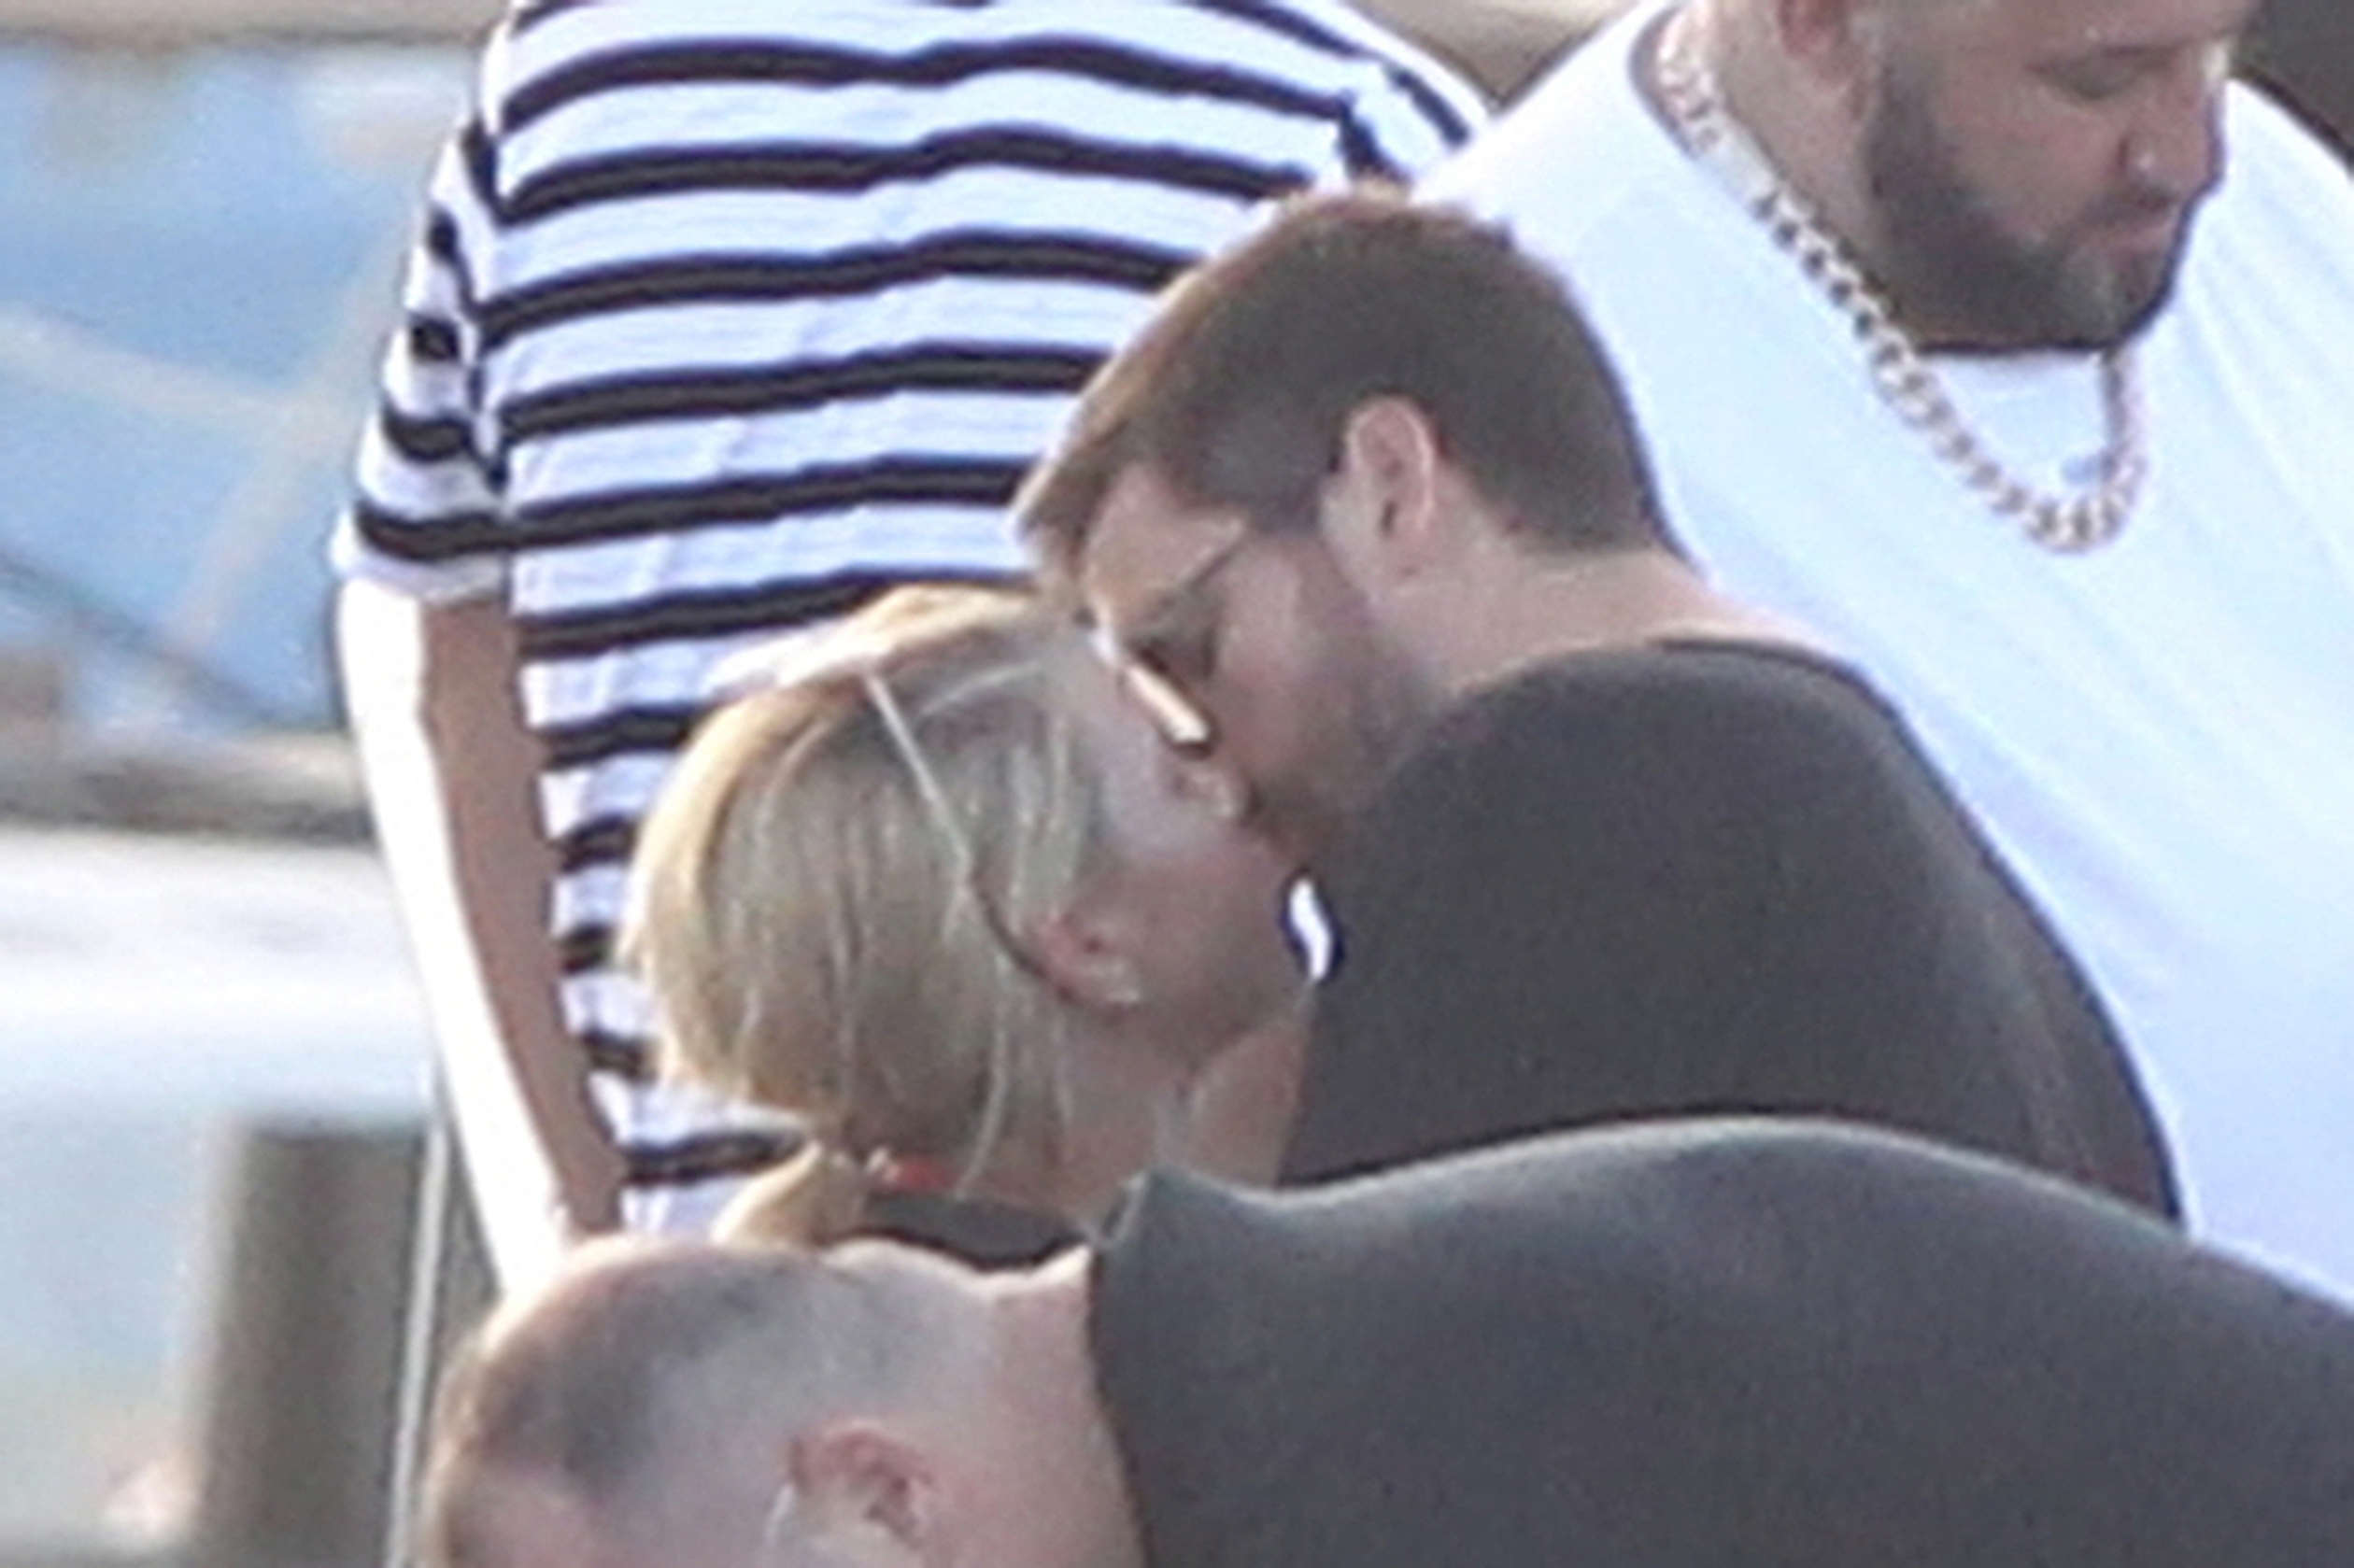 Scott Disick and girlfriend Sophia Richie kissing while boat riding in Miami, Florida.   <P> Pictured: scott disick, sophia richie <B>Ref: SPL1586706  230917  </B><BR/> Picture by: Splash News<BR/> </P><P> <B>Splash News and Pictures</B><BR/> Los Angeles:310-821-2666<BR/> New York:212-619-2666<BR/> London:870-934-2666<BR/> <span id=